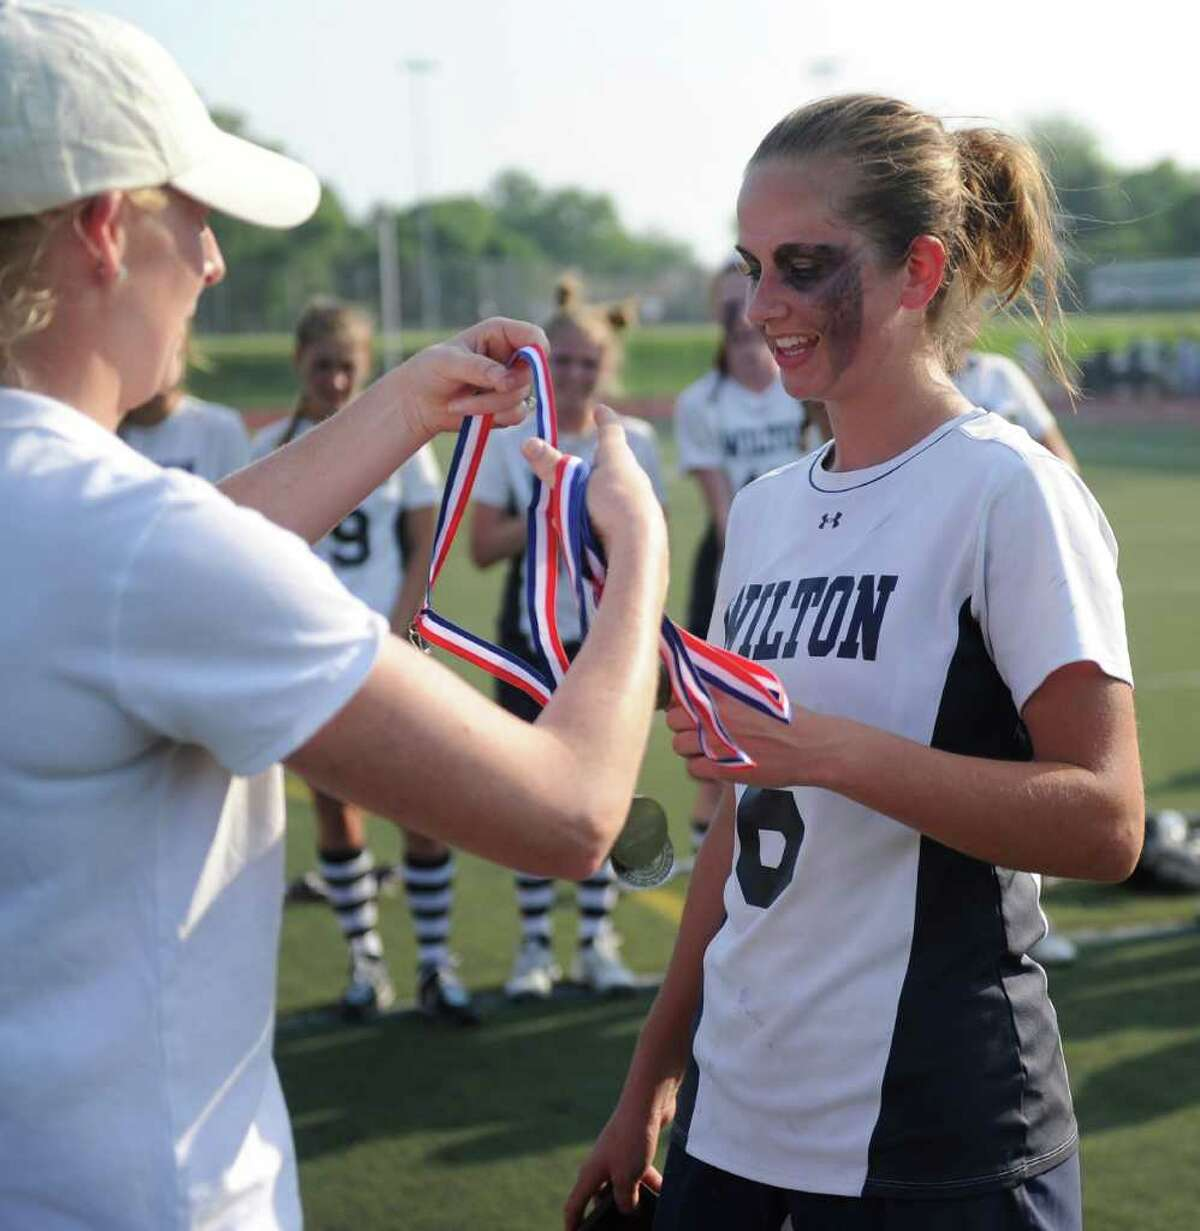 Friday's FCIAC final at Brien McMahon High School in Norwalk on May 28, 2011.